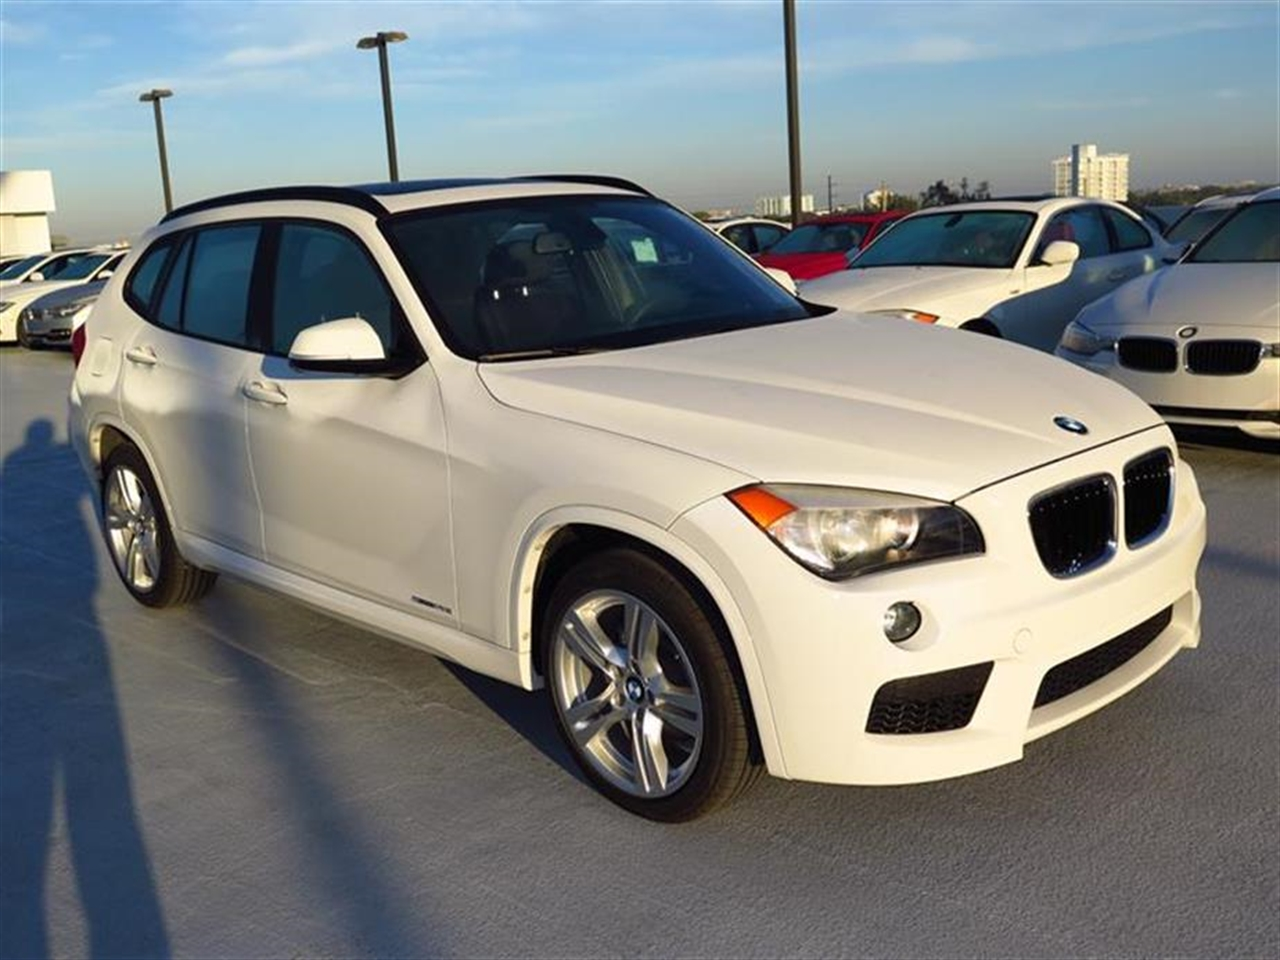 2013 BMW X1 RWD 4dr 28i 12124 miles Adjustable front armrest Anti-theft alarm system Automatic c